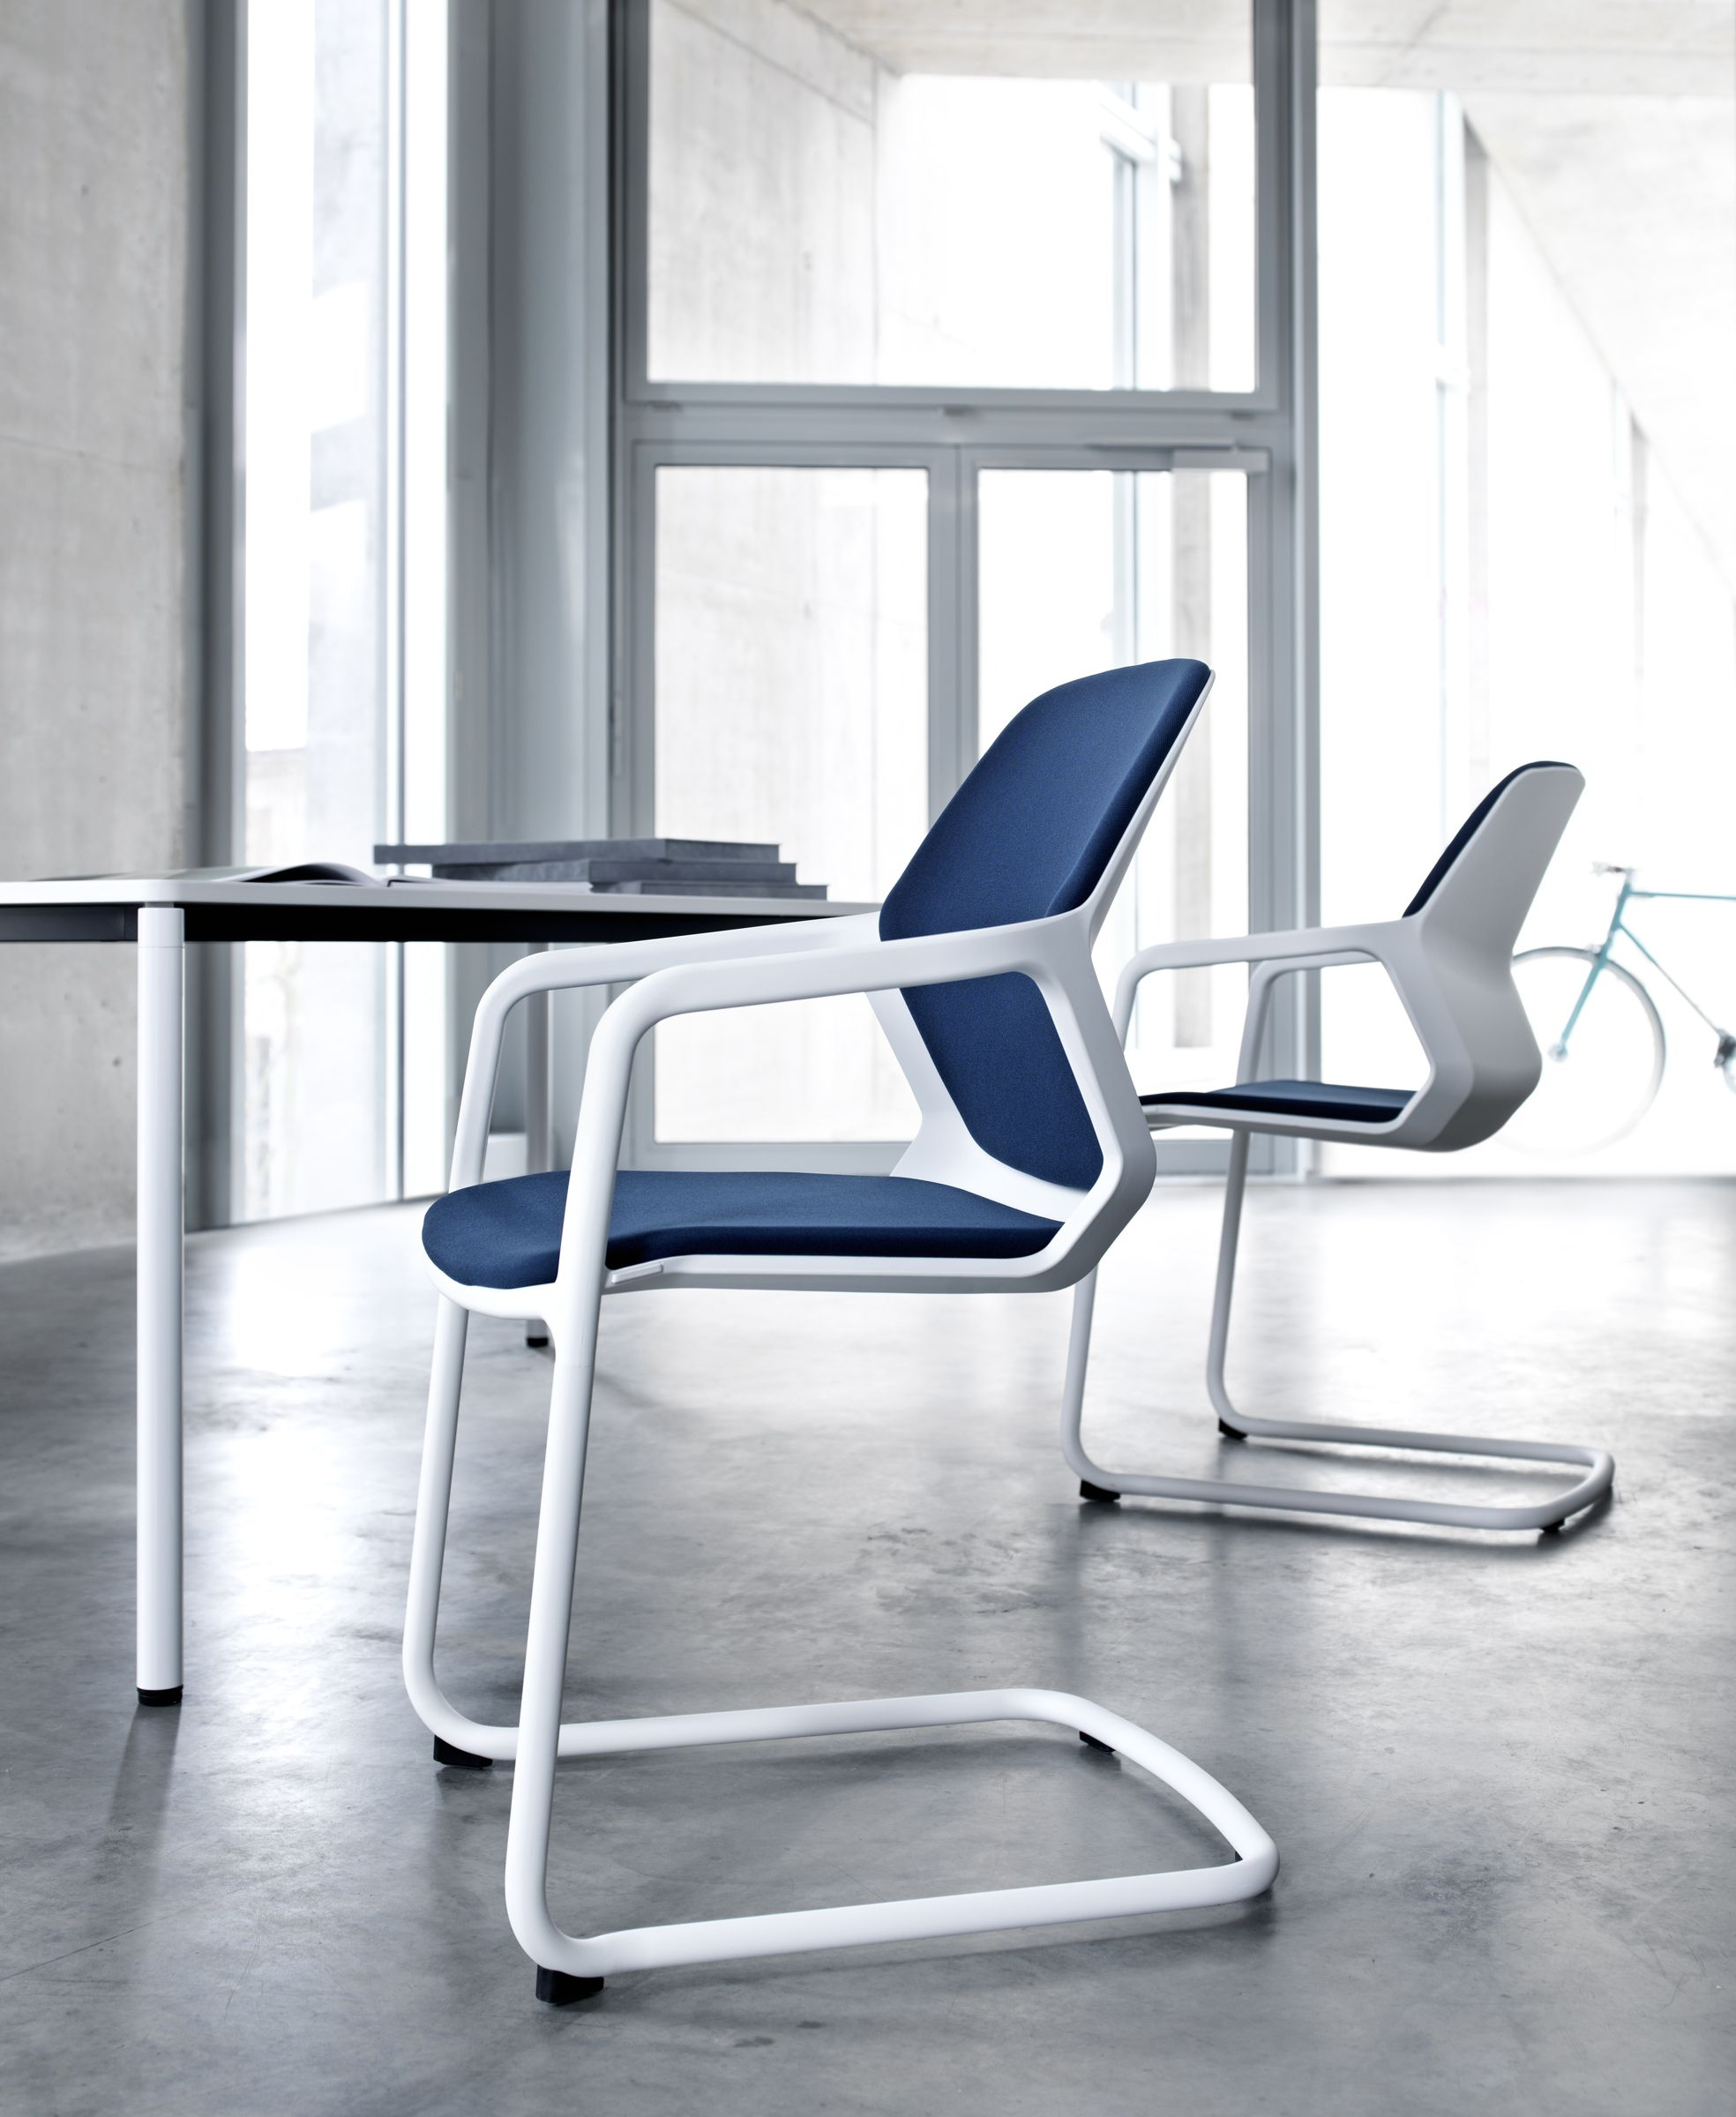 GRAPH conference chair snow white Design by jehs laub